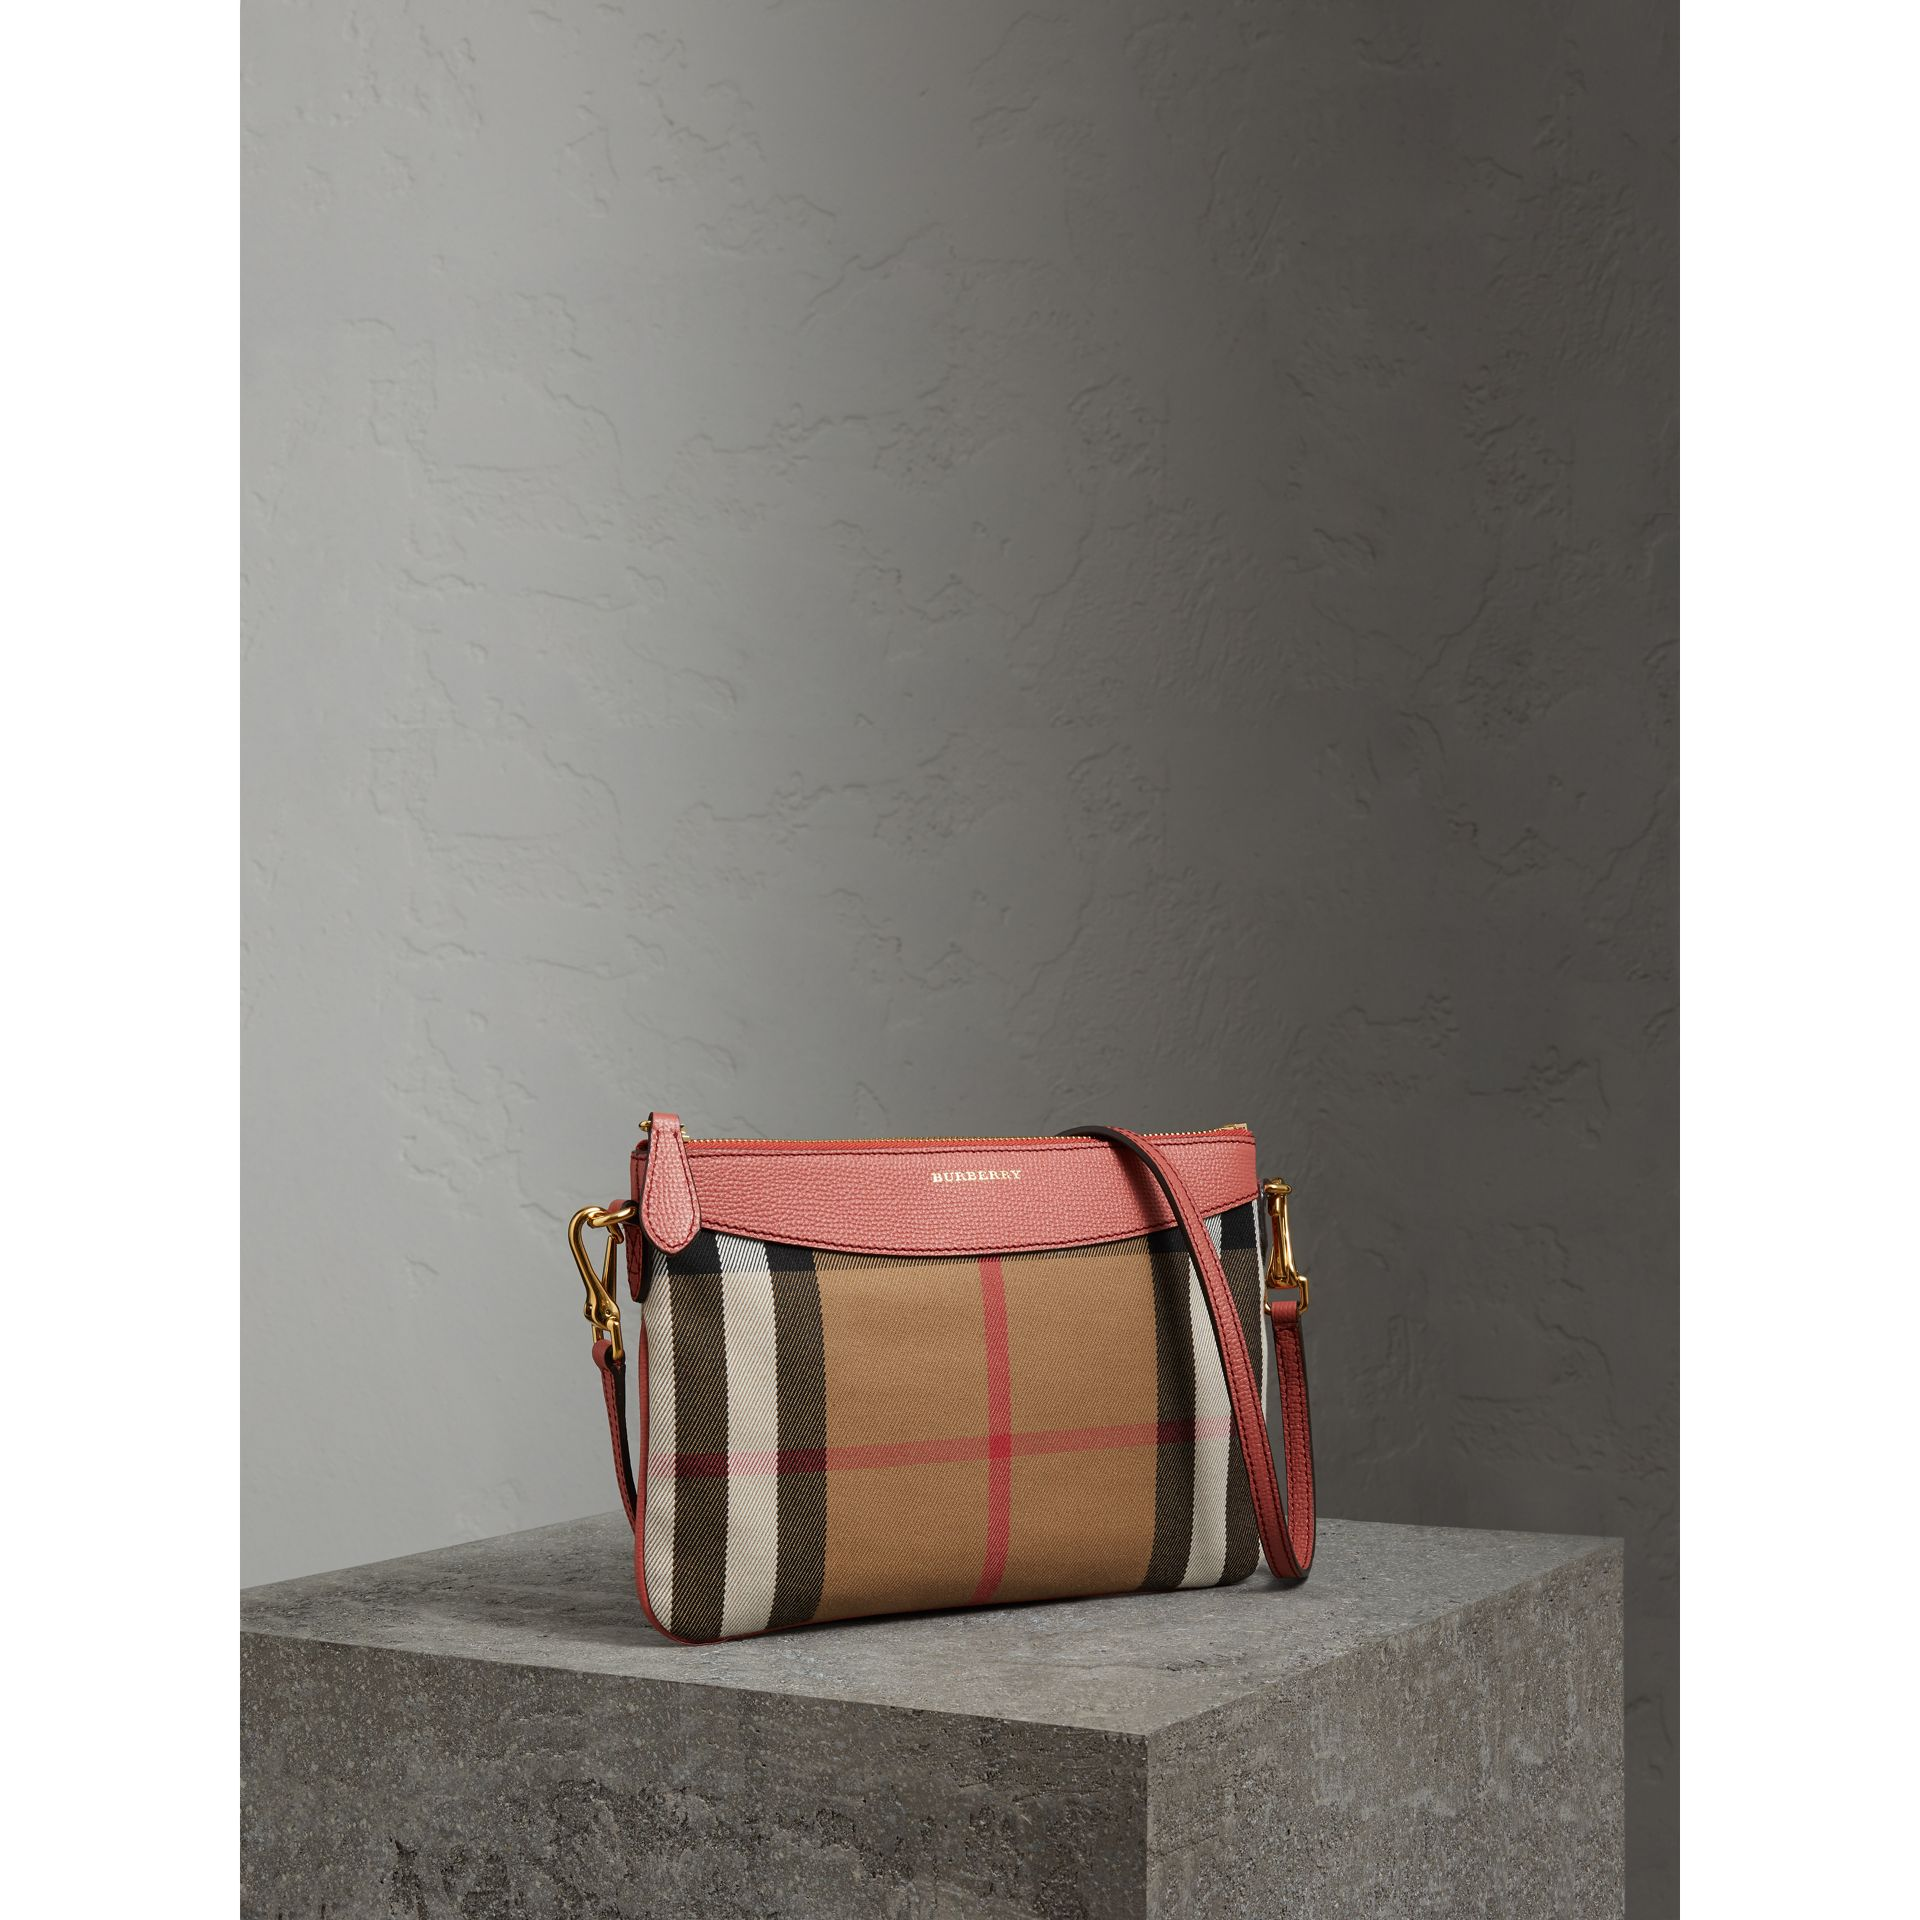 House Check and Leather Clutch Bag in Cinnamon Red - Women | Burberry United Kingdom - gallery image 6